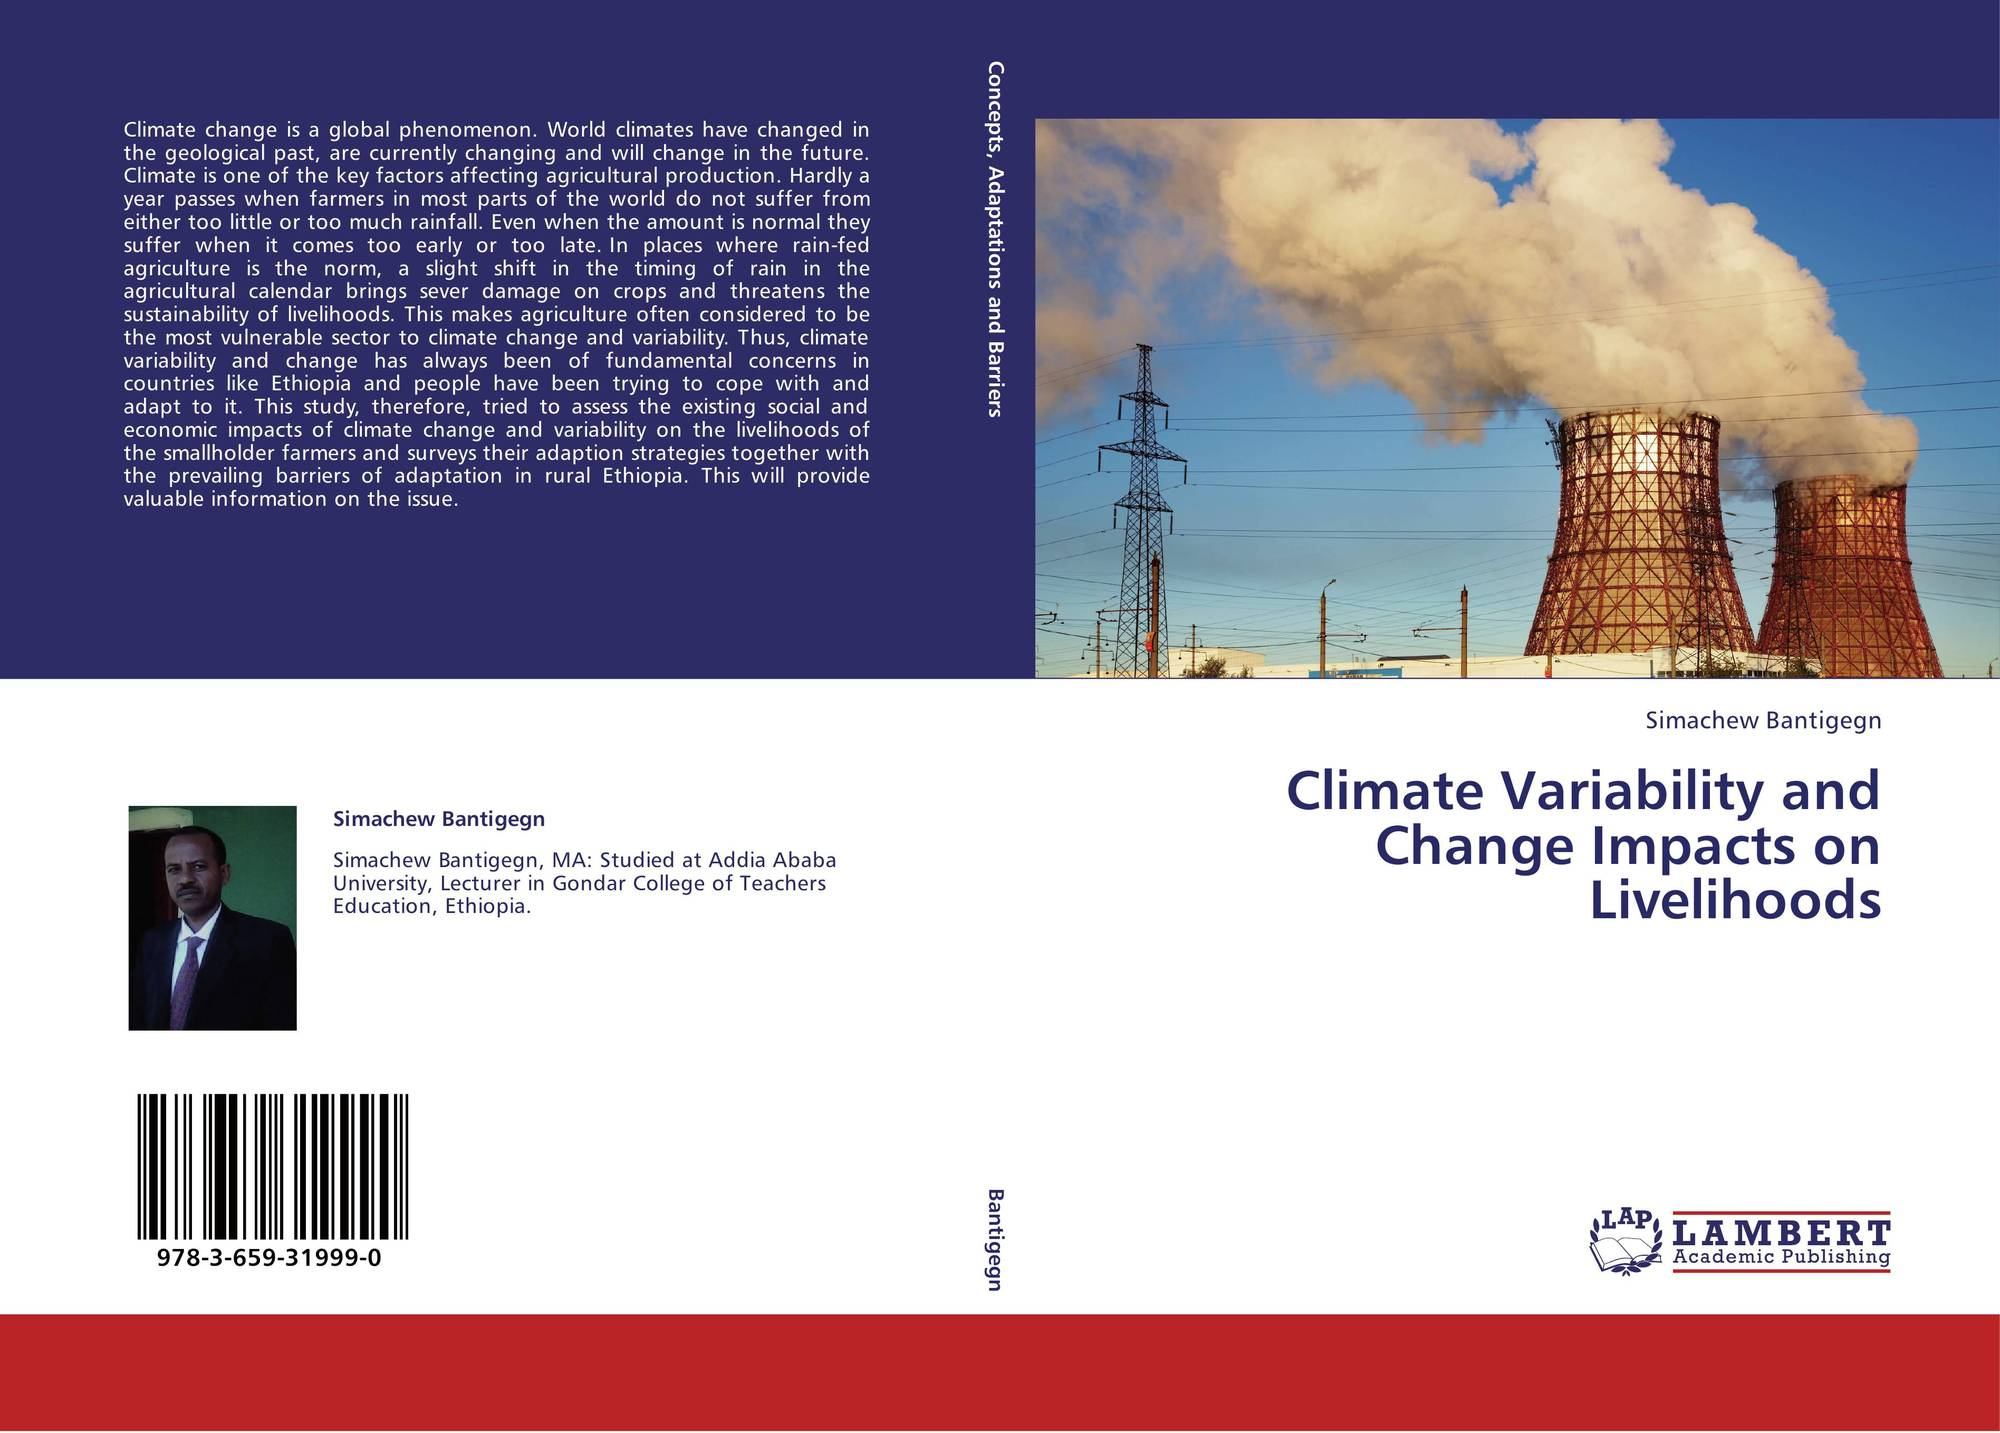 impact of climate variability and chang Climate change, variability and sustainable agriculture adverse impacts of climate change and variability are felt impact of climate change.